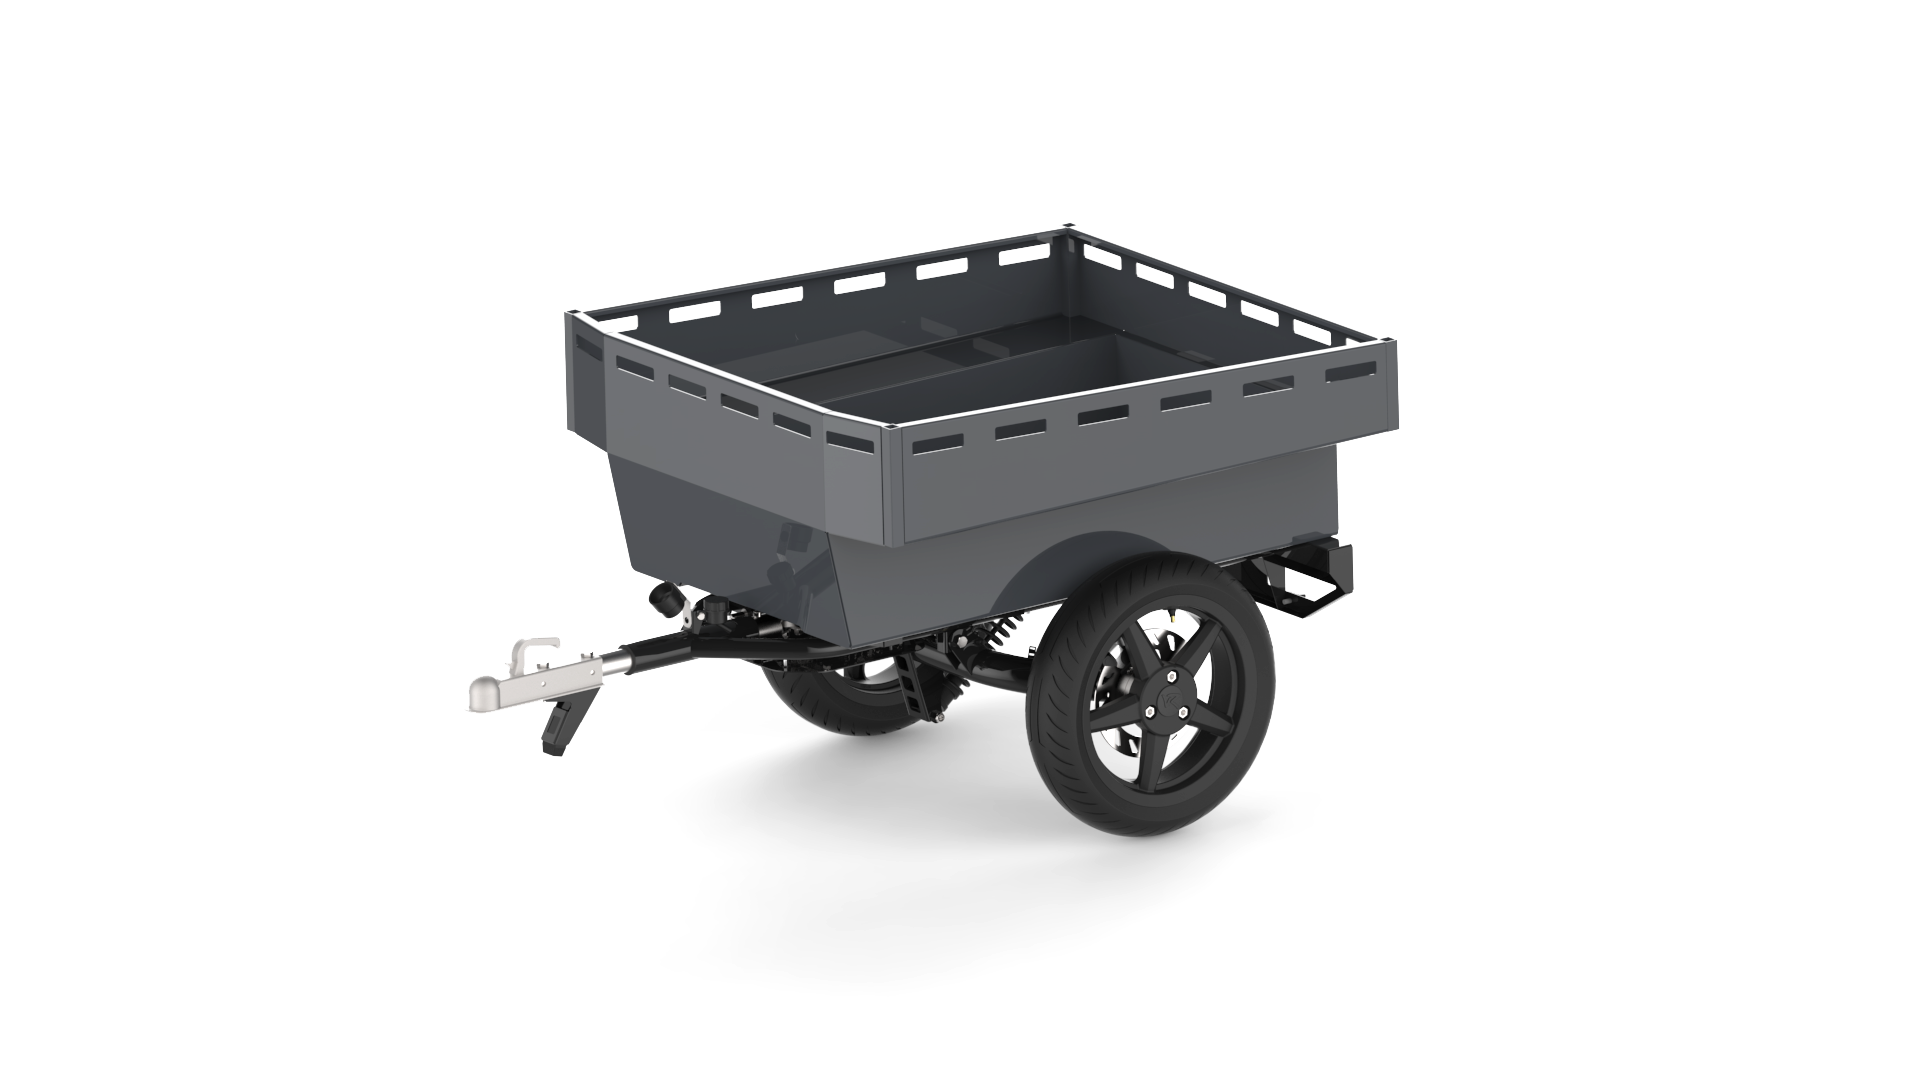 CARRY, the modular trailer system